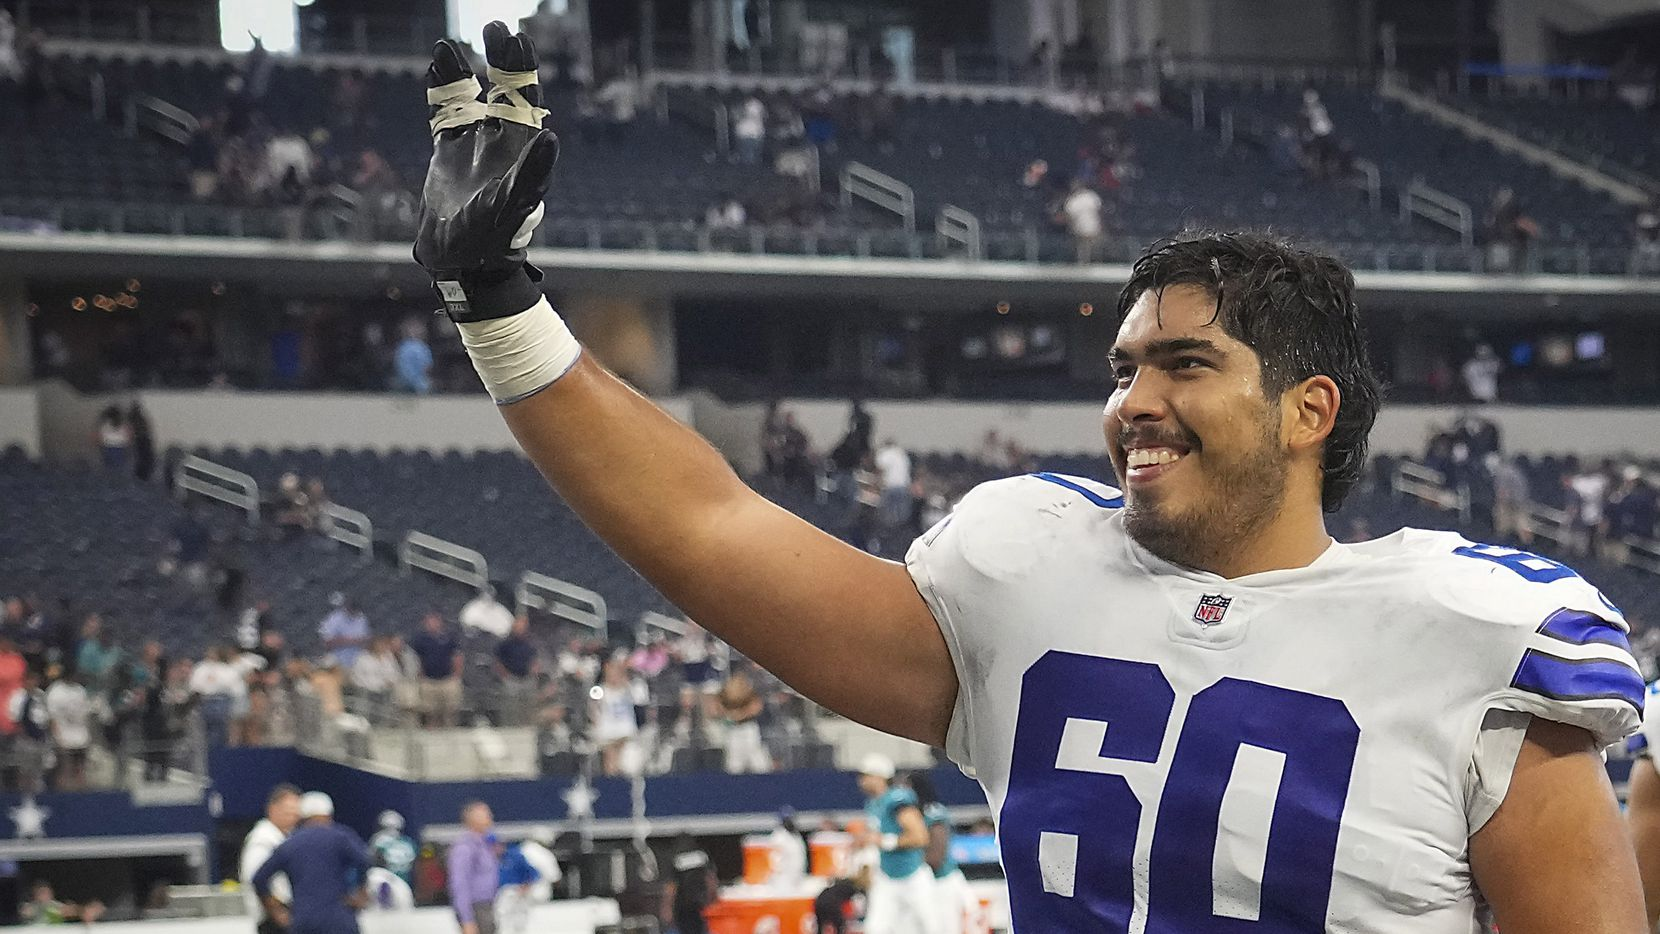 Dallas Cowboys offensive tackle Isaac Alarcon waves to the crowd as he leaves the field following a loss to the Jacksonville Jaguars in a preseason NFL football game at AT&T Stadium on Sunday, Aug. 29, 2021, in Arlington.